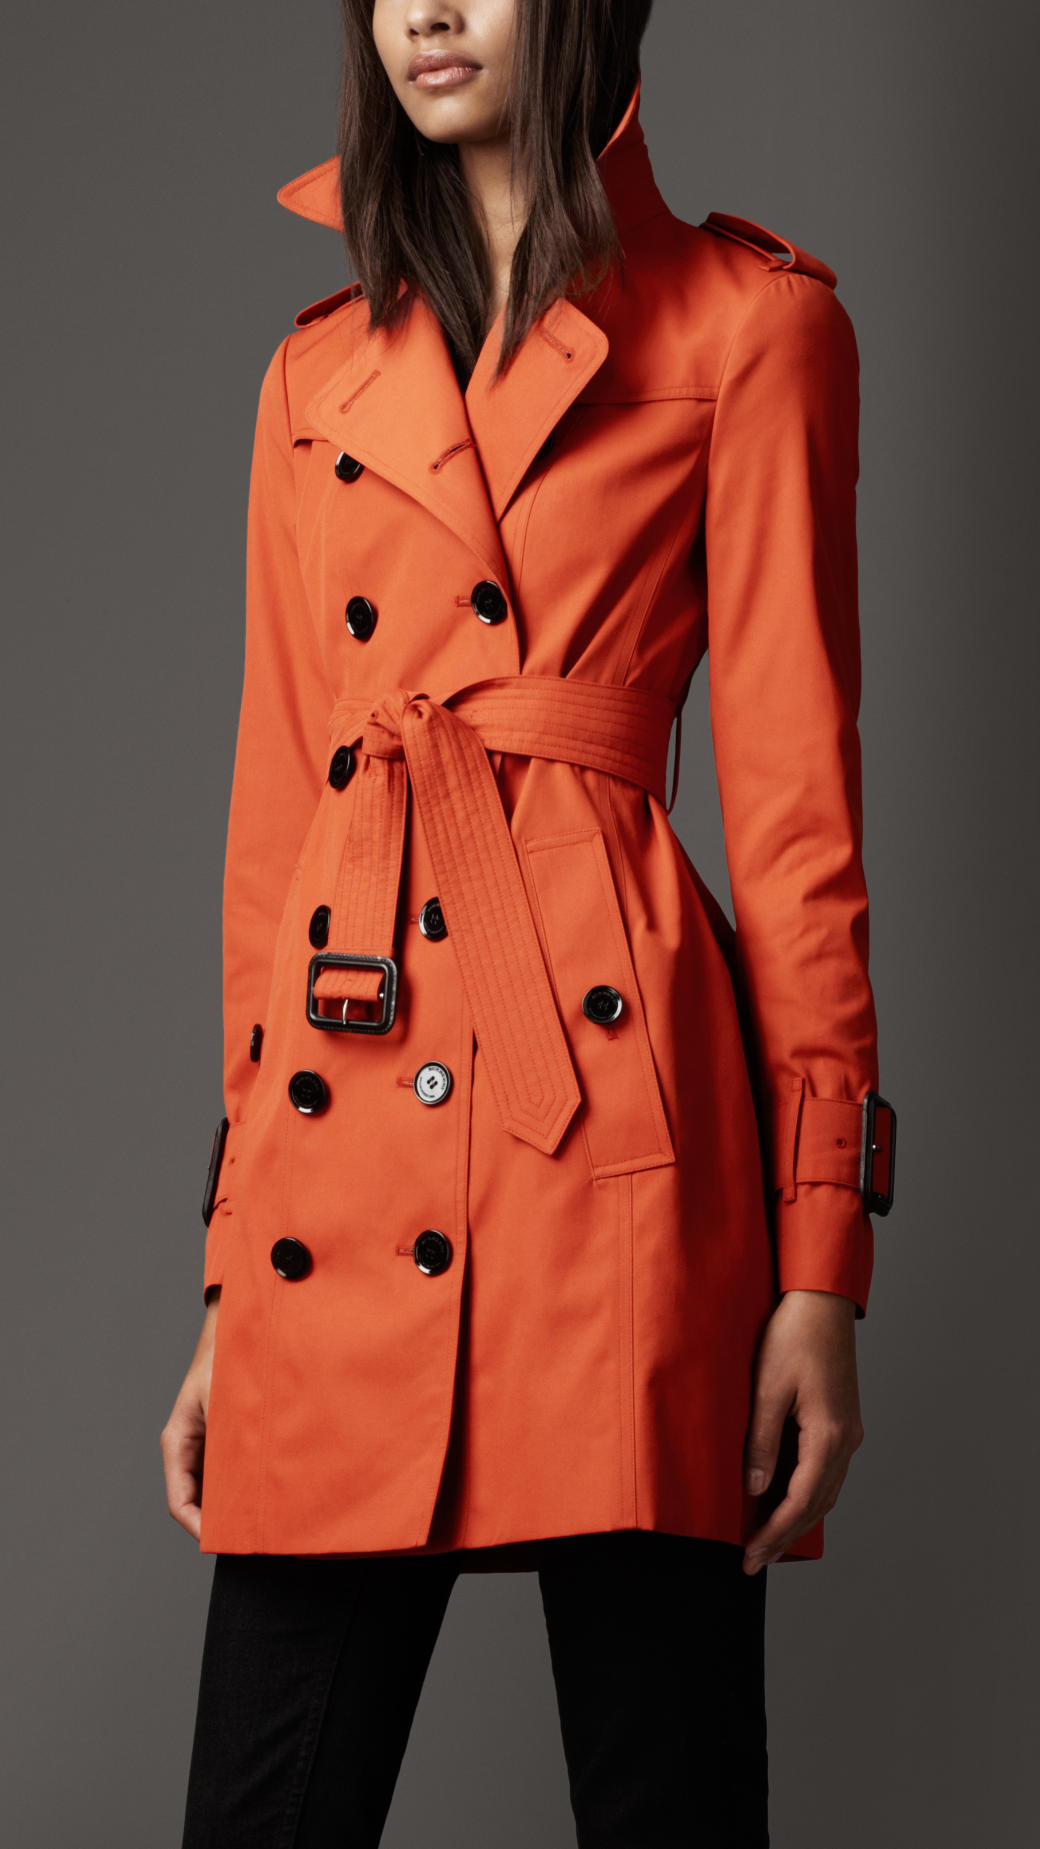 burberry midlength cotton blend trench coat in orange burnt orange lyst. Black Bedroom Furniture Sets. Home Design Ideas